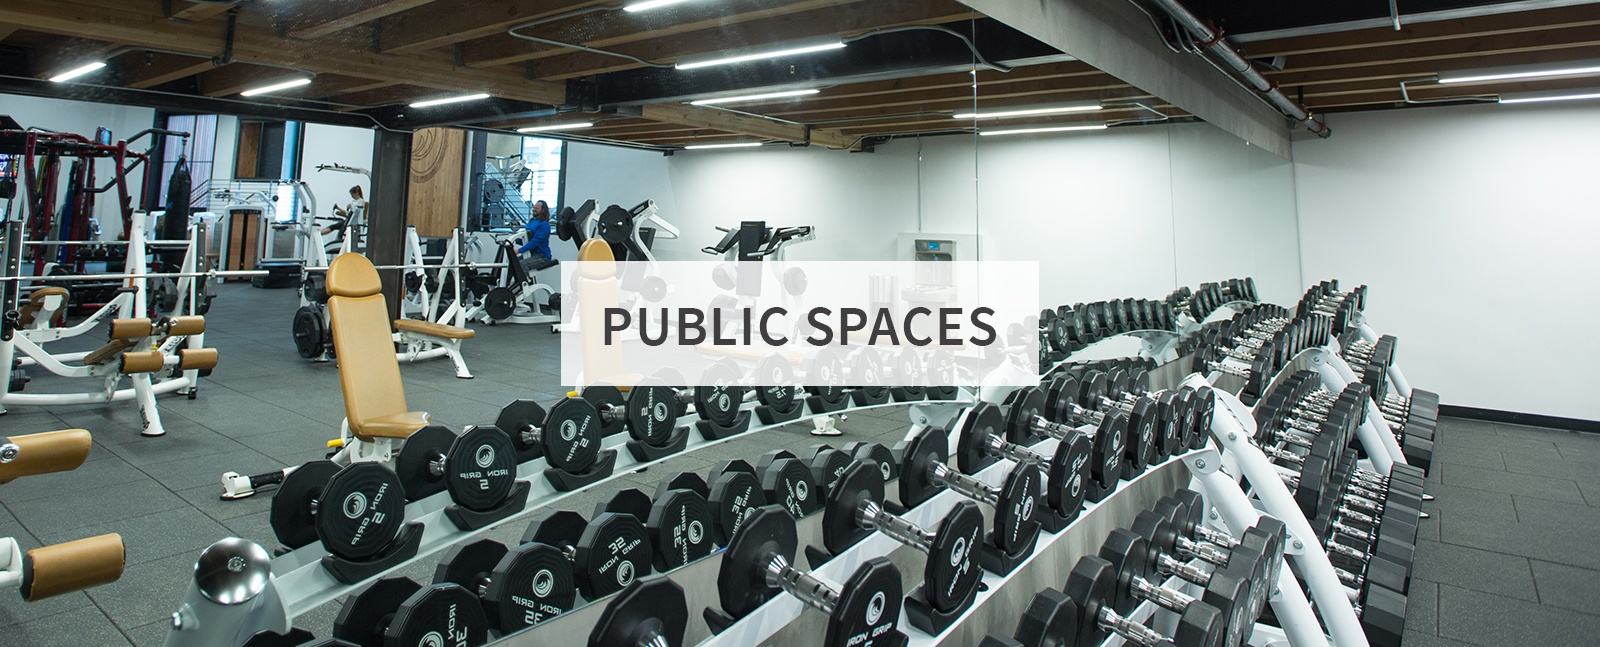 Public Spaces - Commercial Interior Design Services in Carlsbad by Citron Design Group